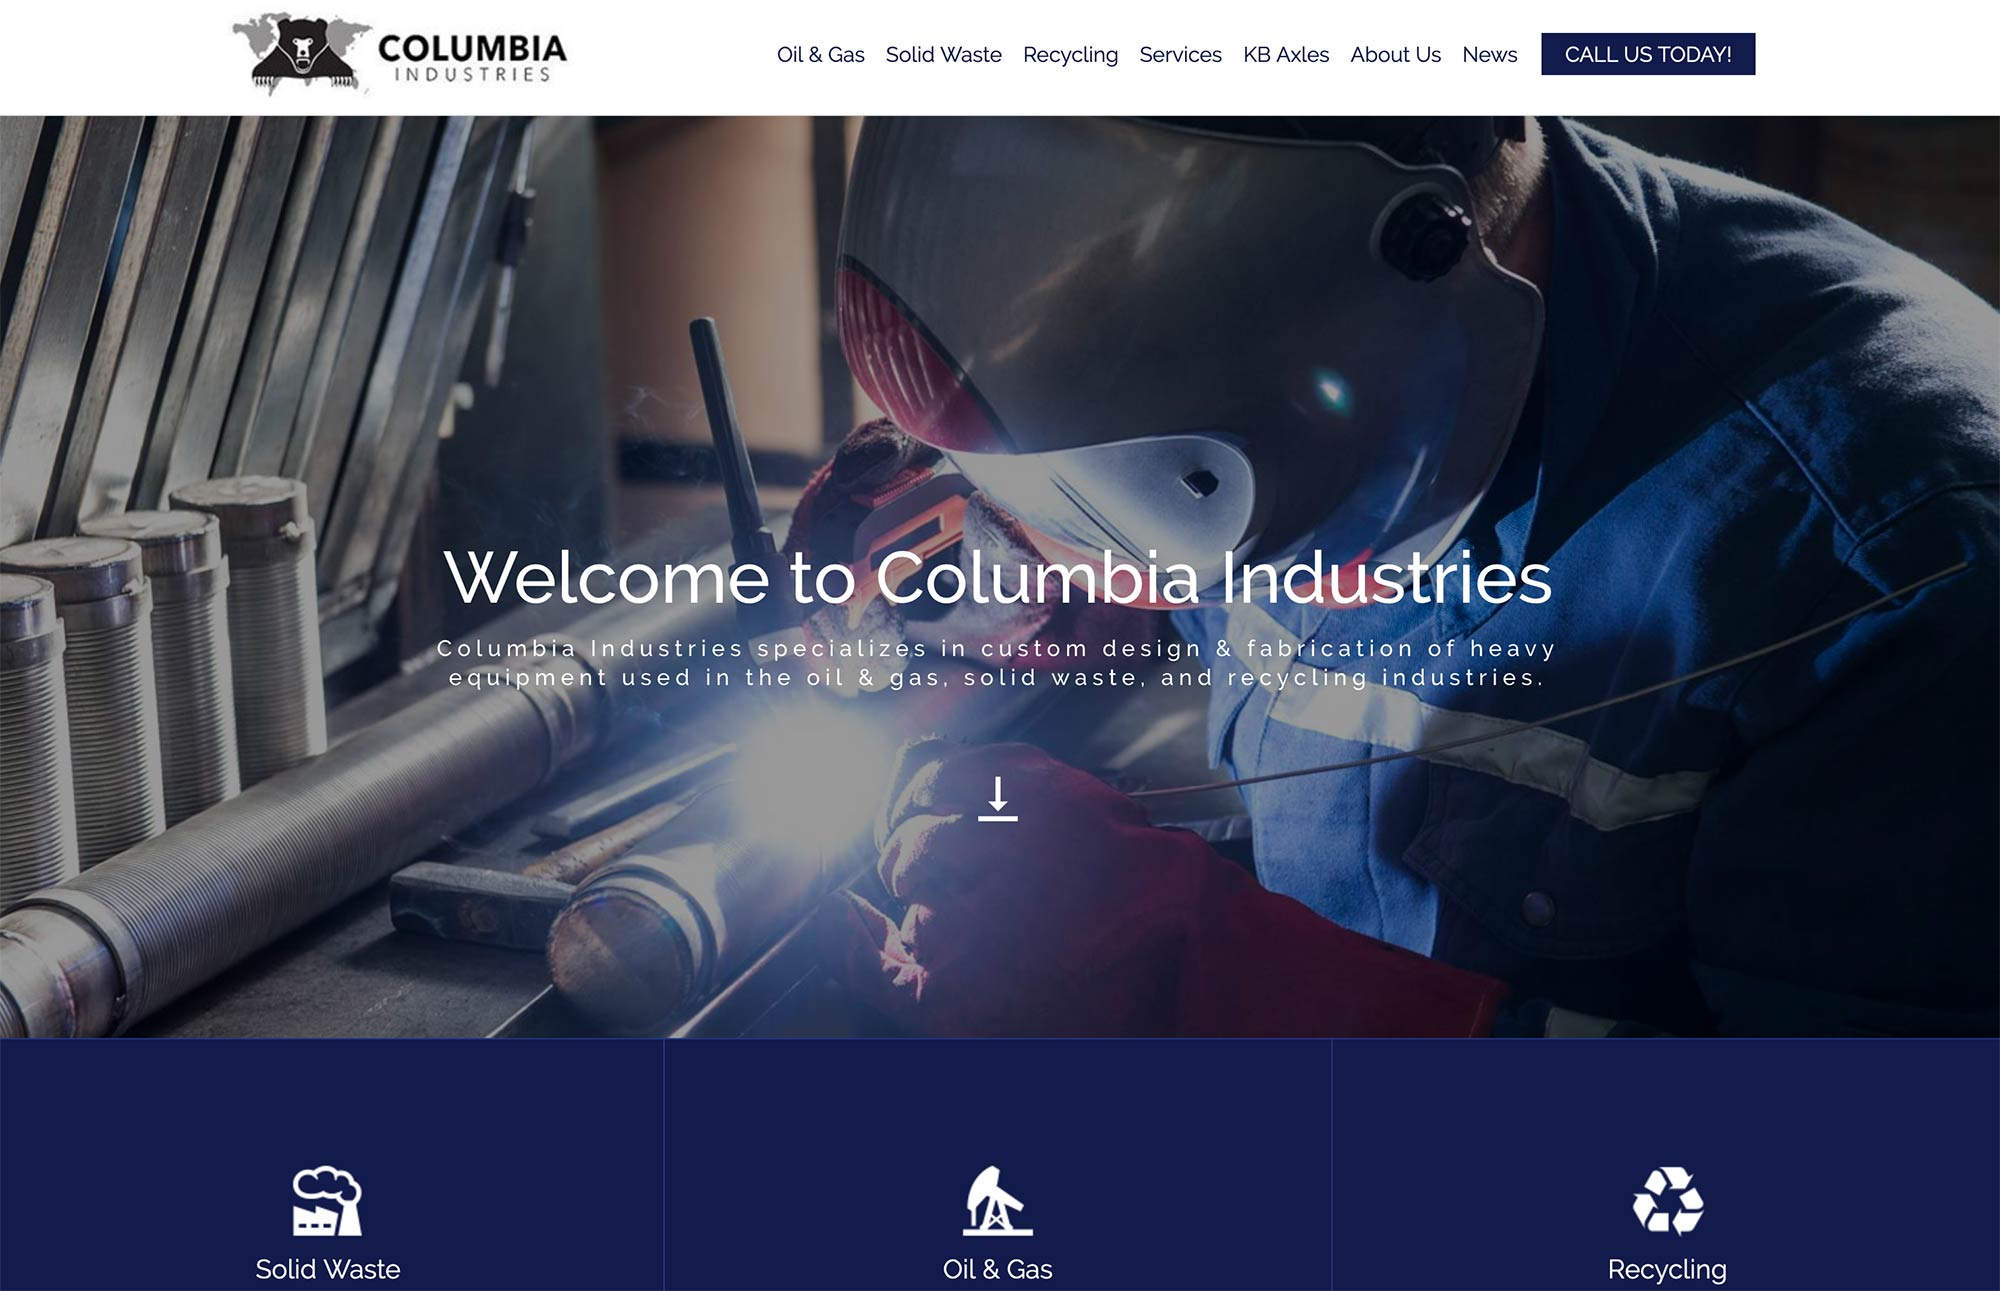 Columbia Industries